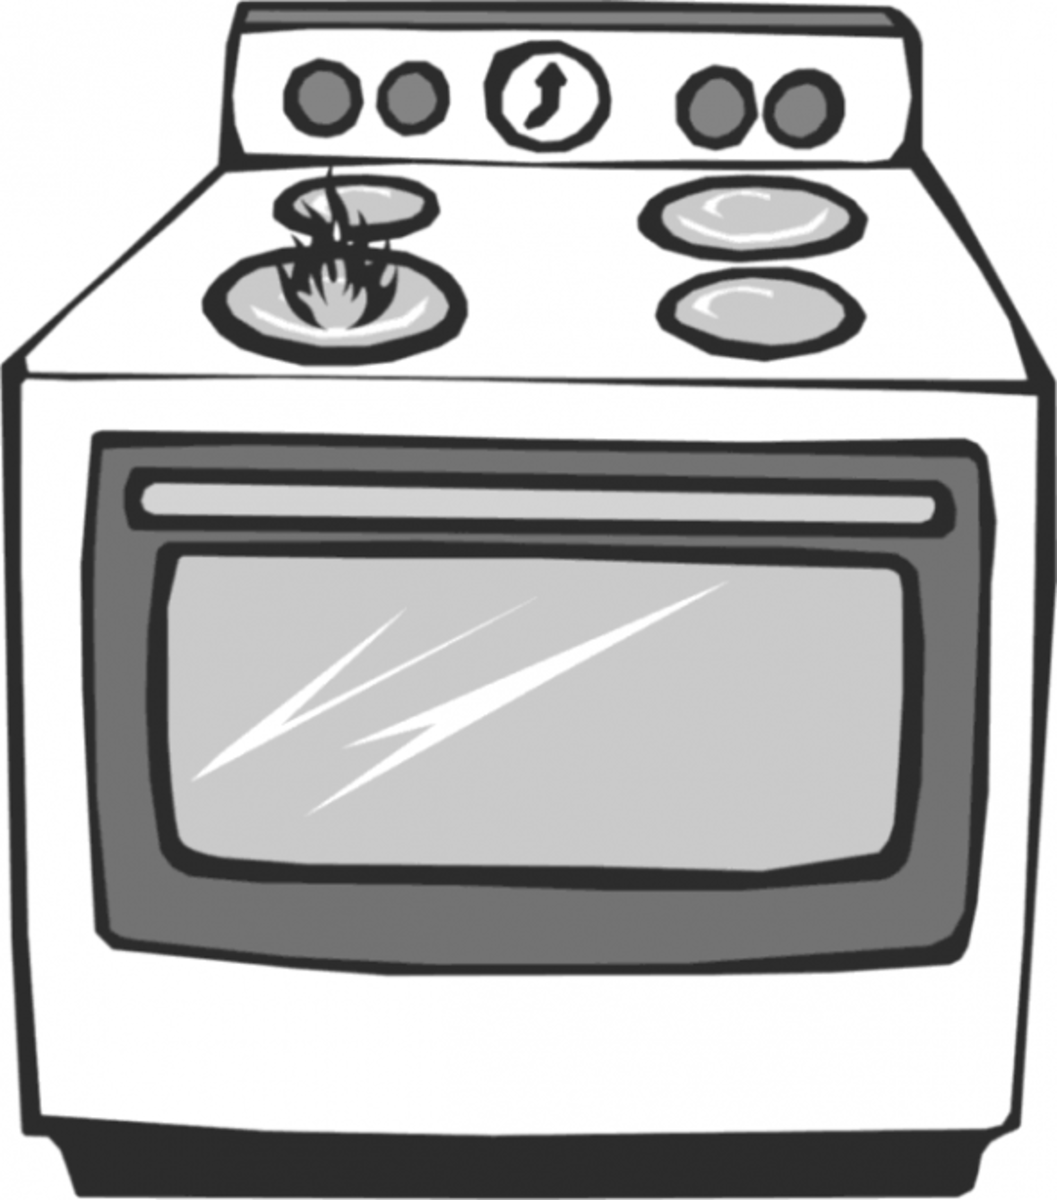 Gas oven photo,credited to wpclipart.com